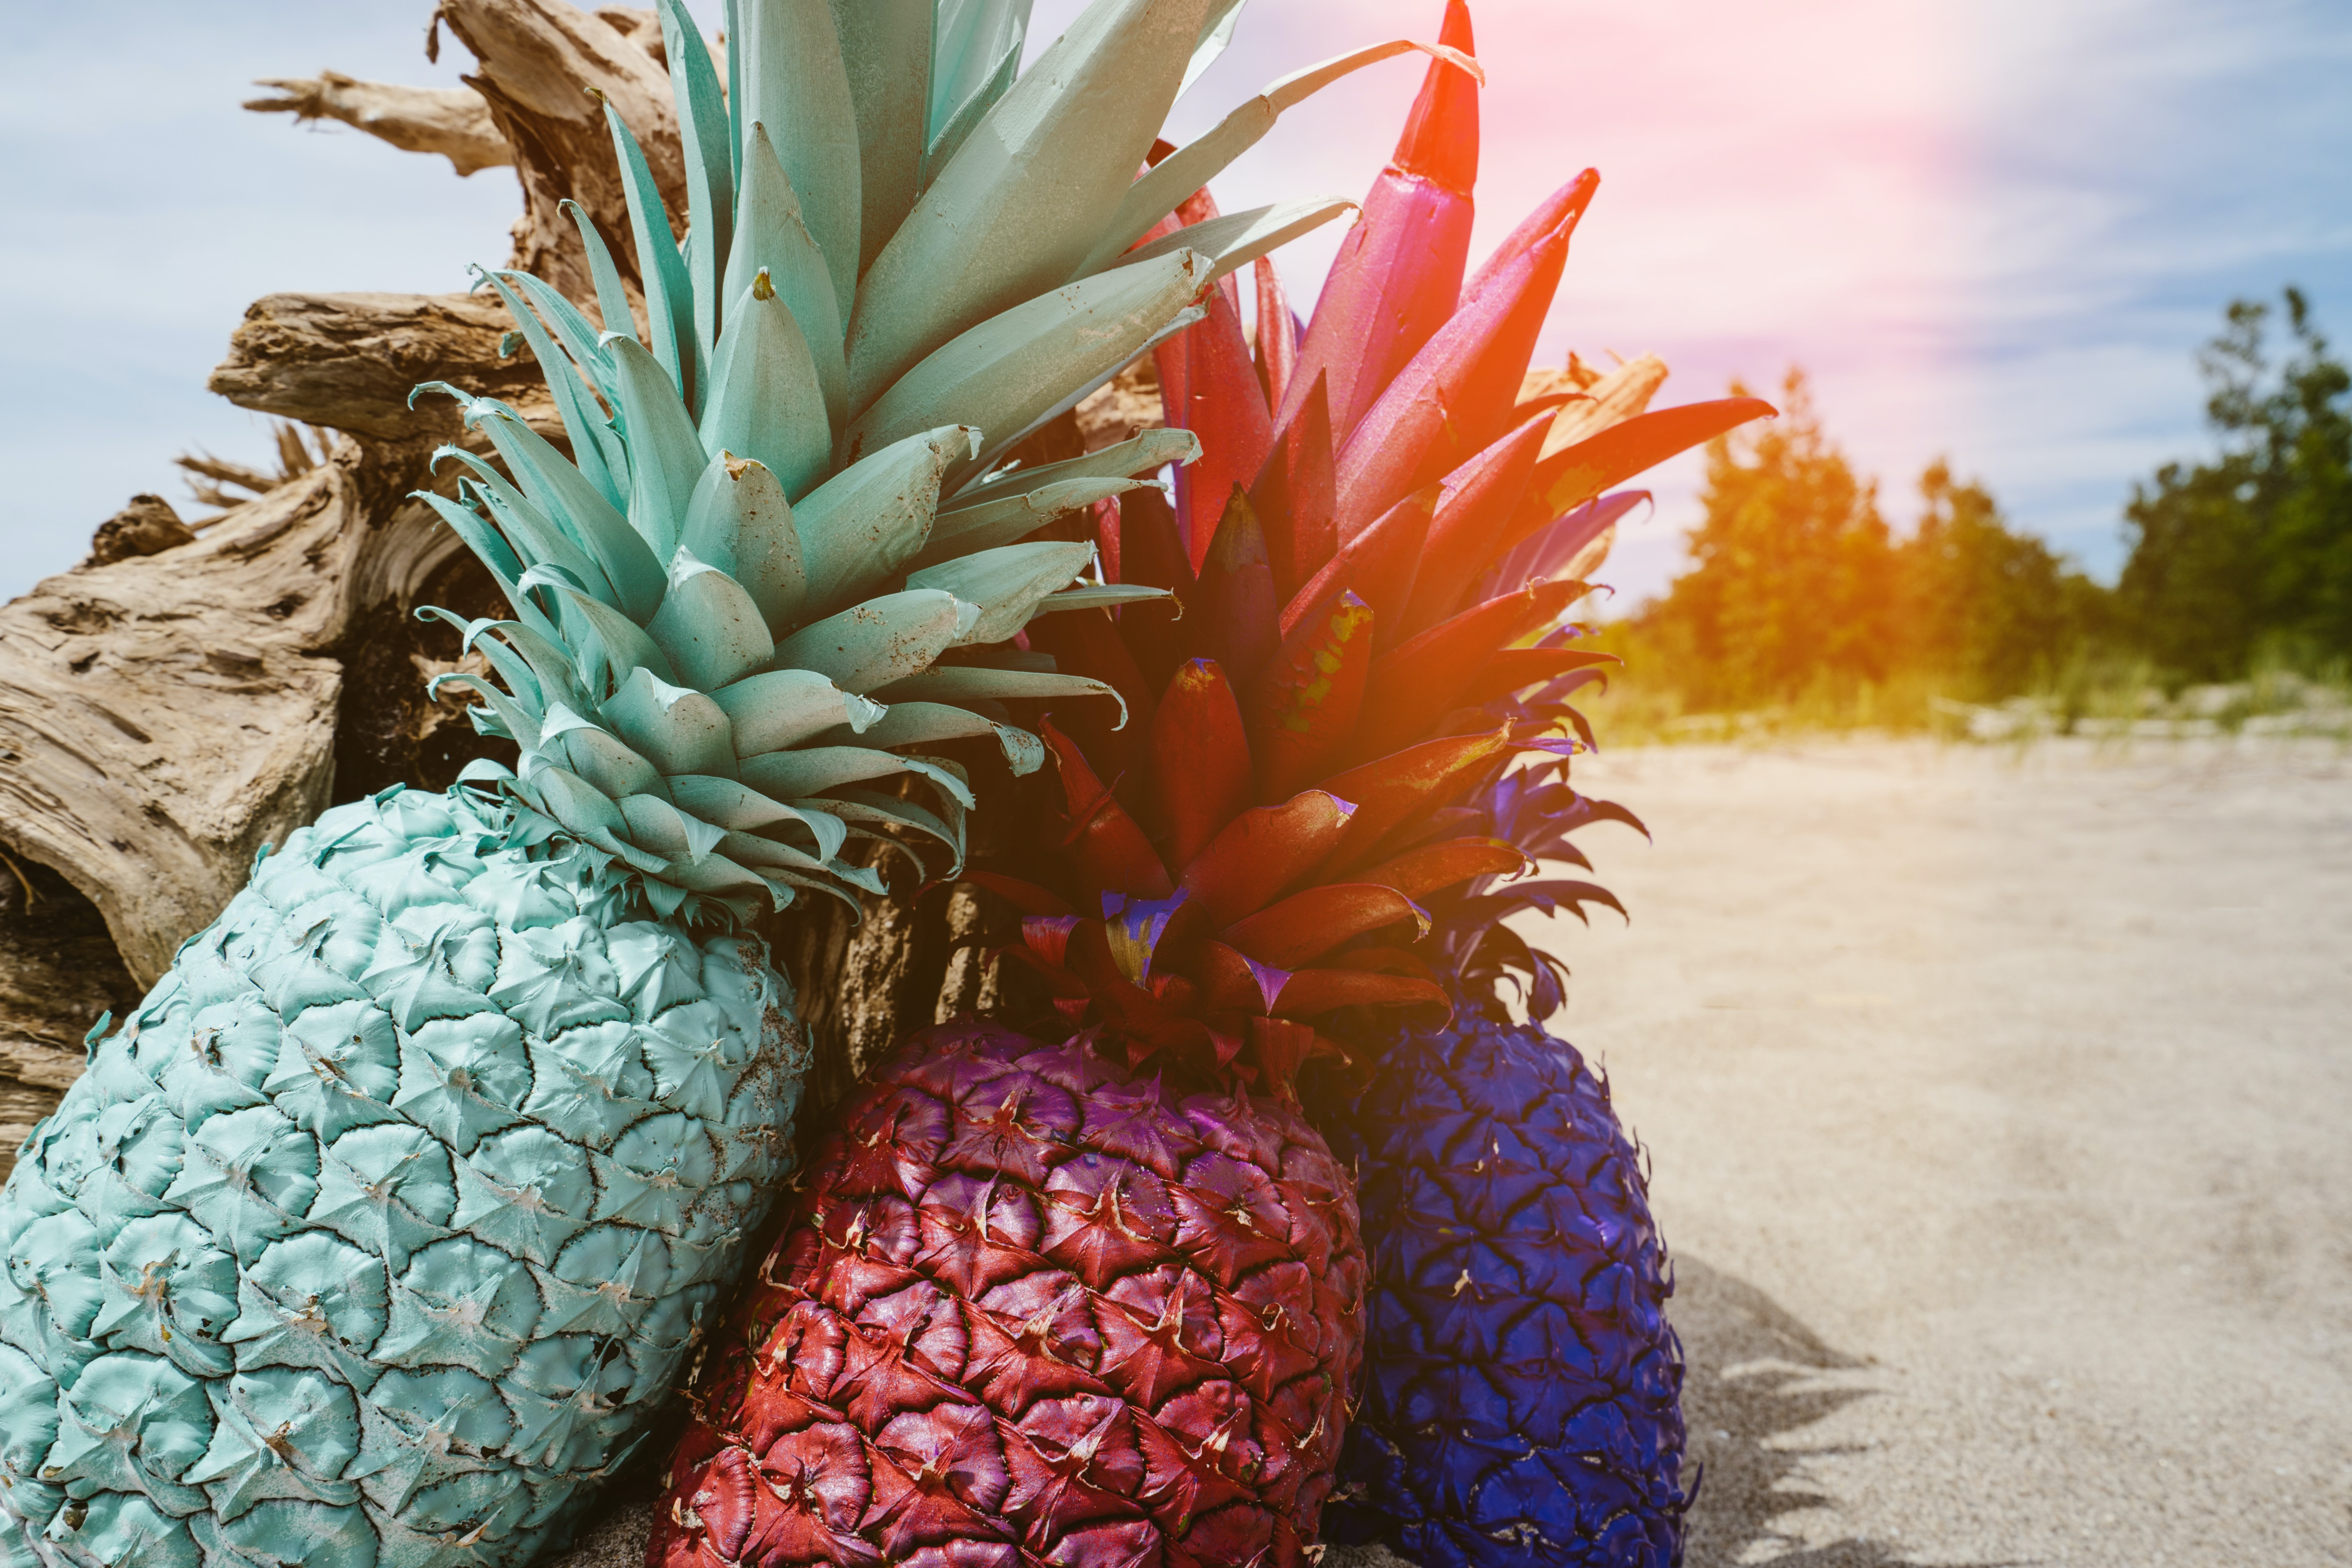 Multicolored pineapples leaning against each other on the beach.